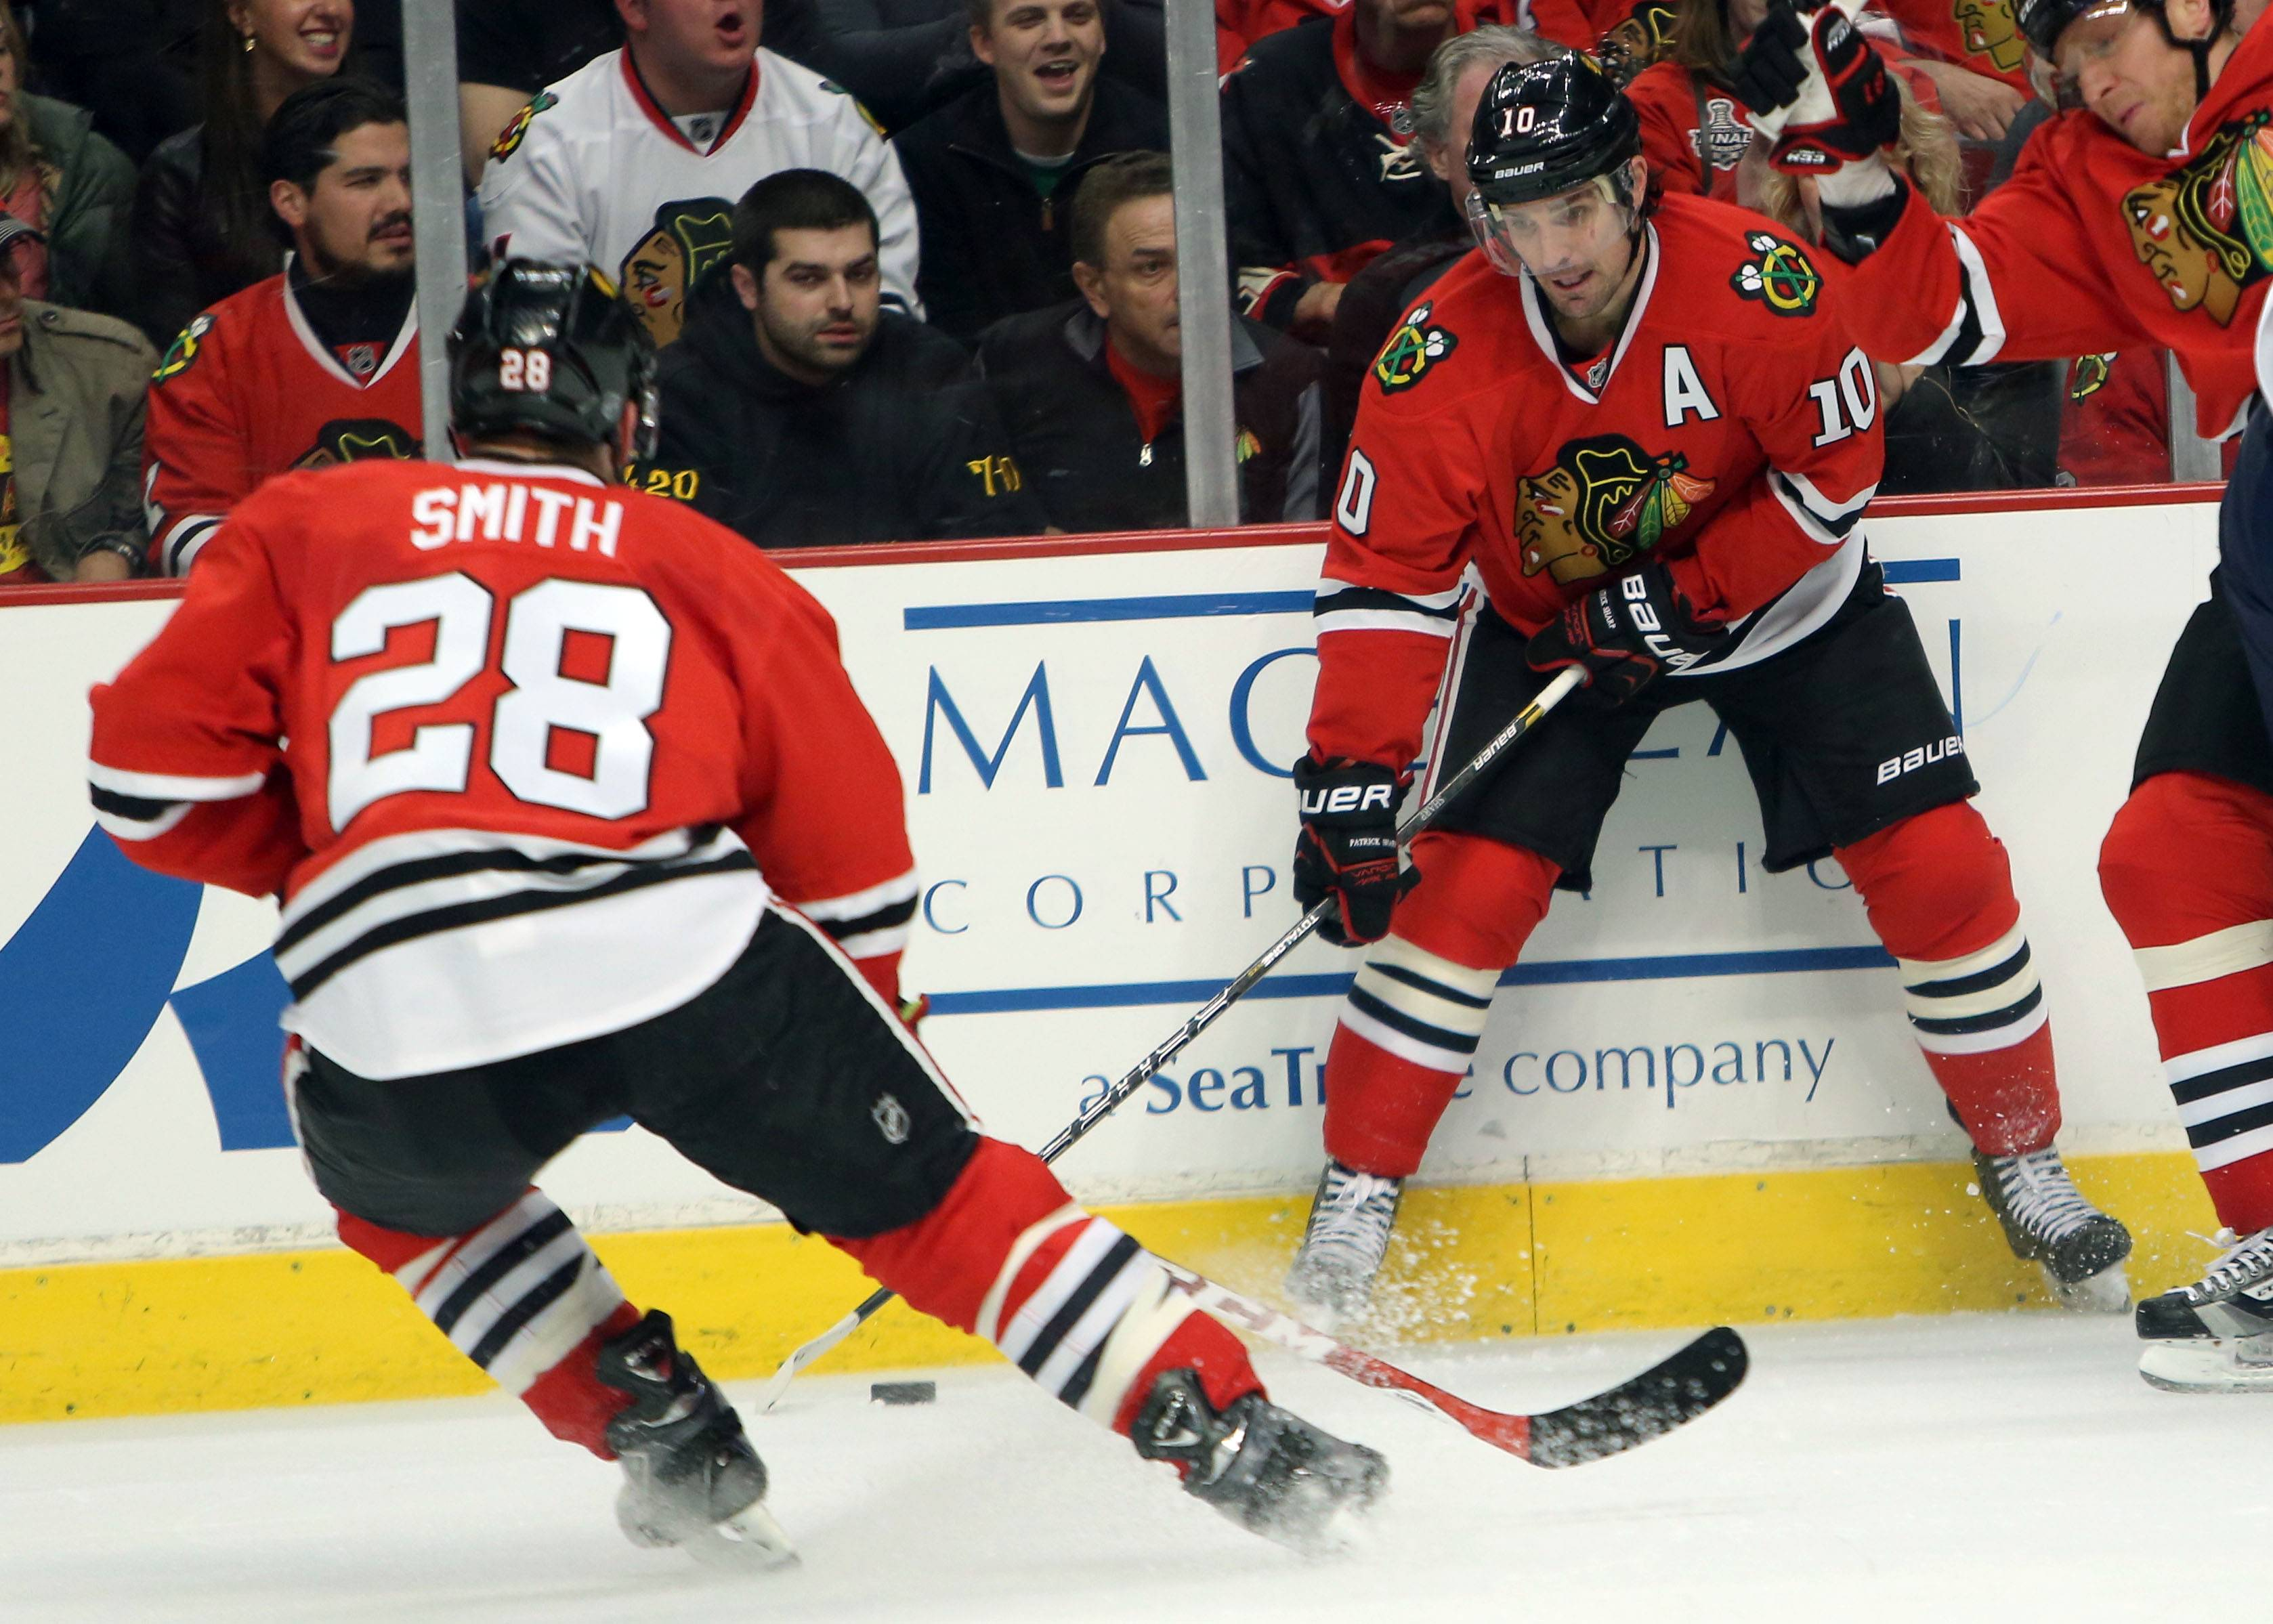 Patrick Sharp, here getting the puck to Ben Smith, had trouble scoring in the opening round of the playoffs, but he found others way to help the Blackhawks with his passing, defense and checking.